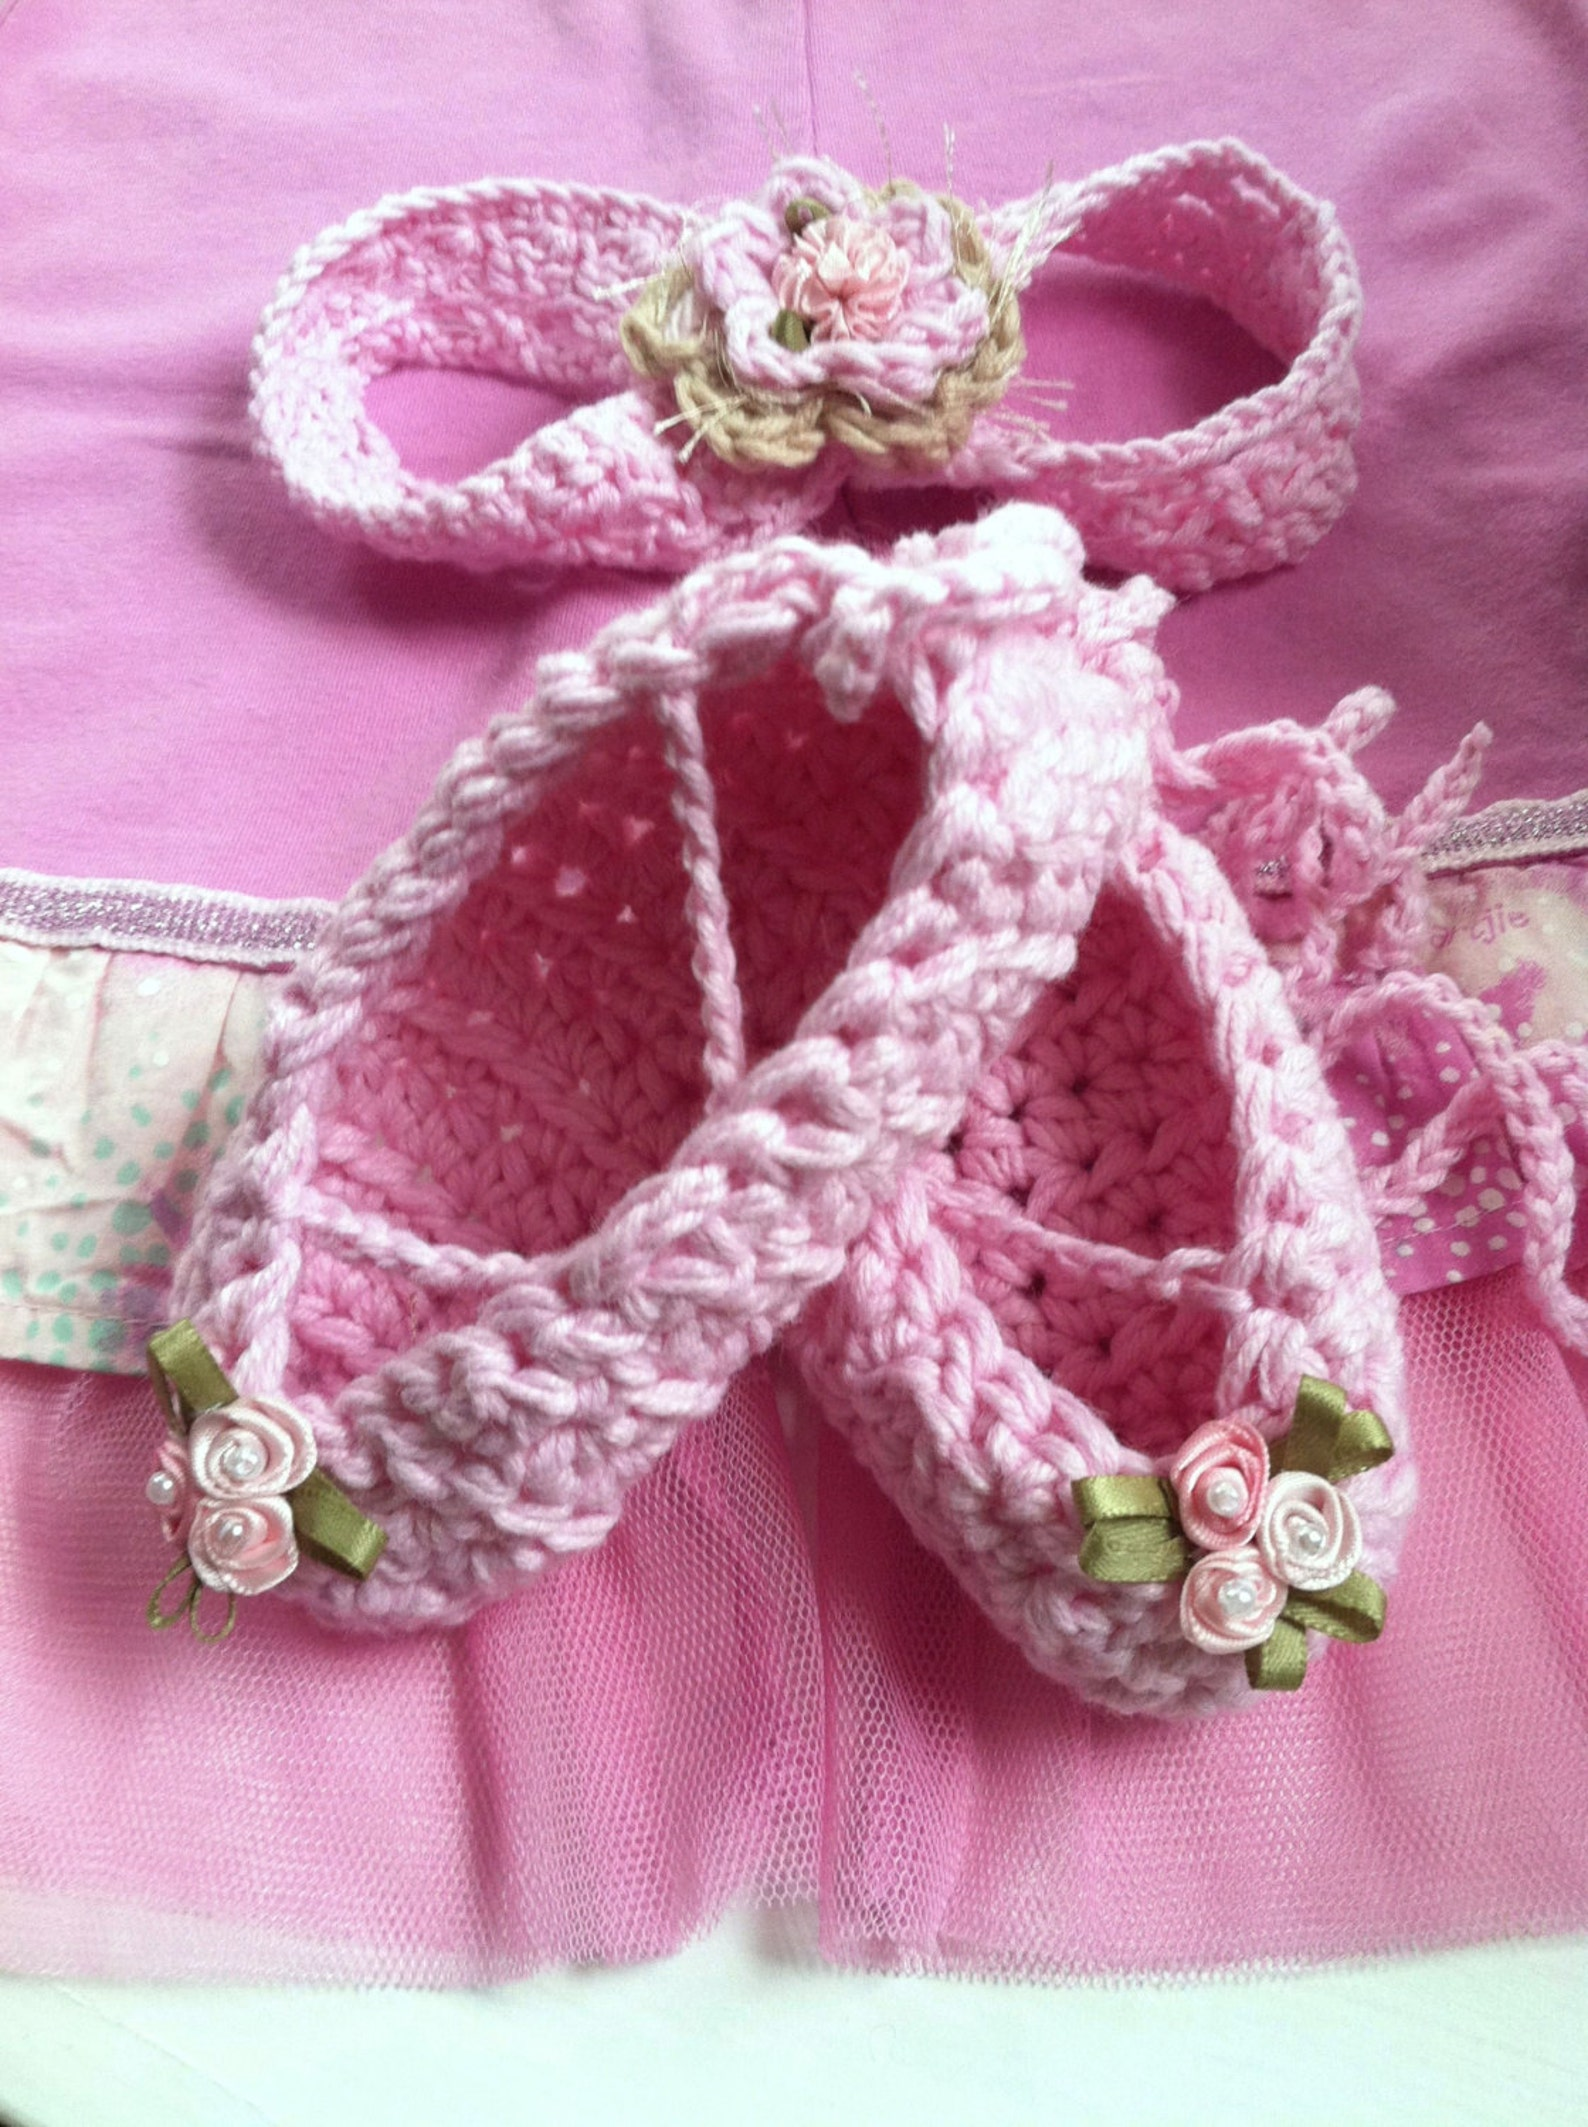 crochet pattern,baby girls ballet slippers,ballet,shoes,booties,headband,lace,gift set,crochet,girls,toddlers,ballet slippers, y